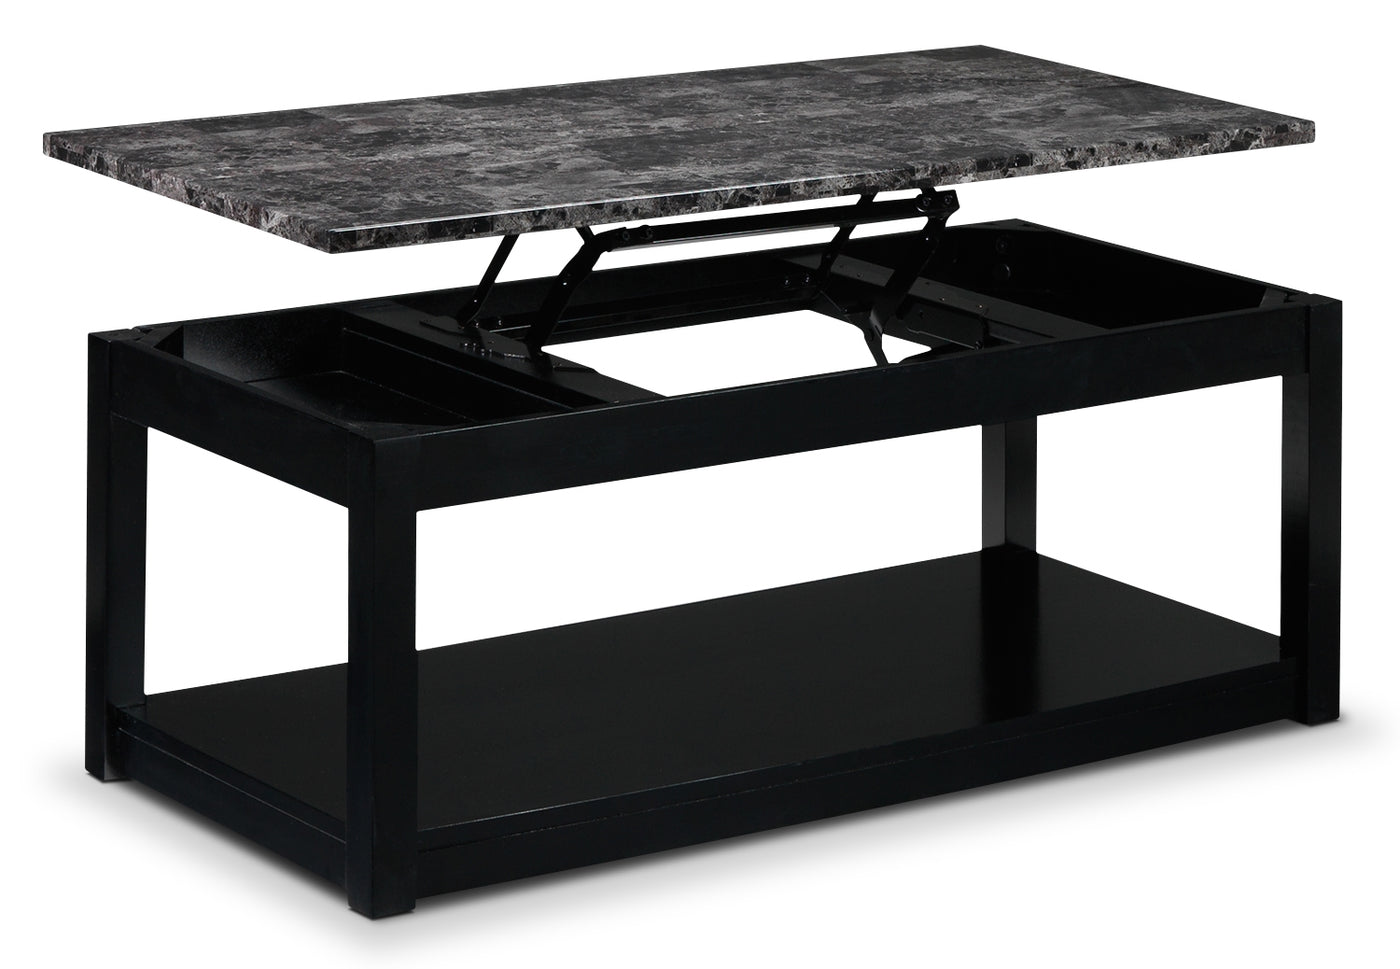 6574a5355dd Selena Lift-Top Coffee Table - Black. Touch to zoom